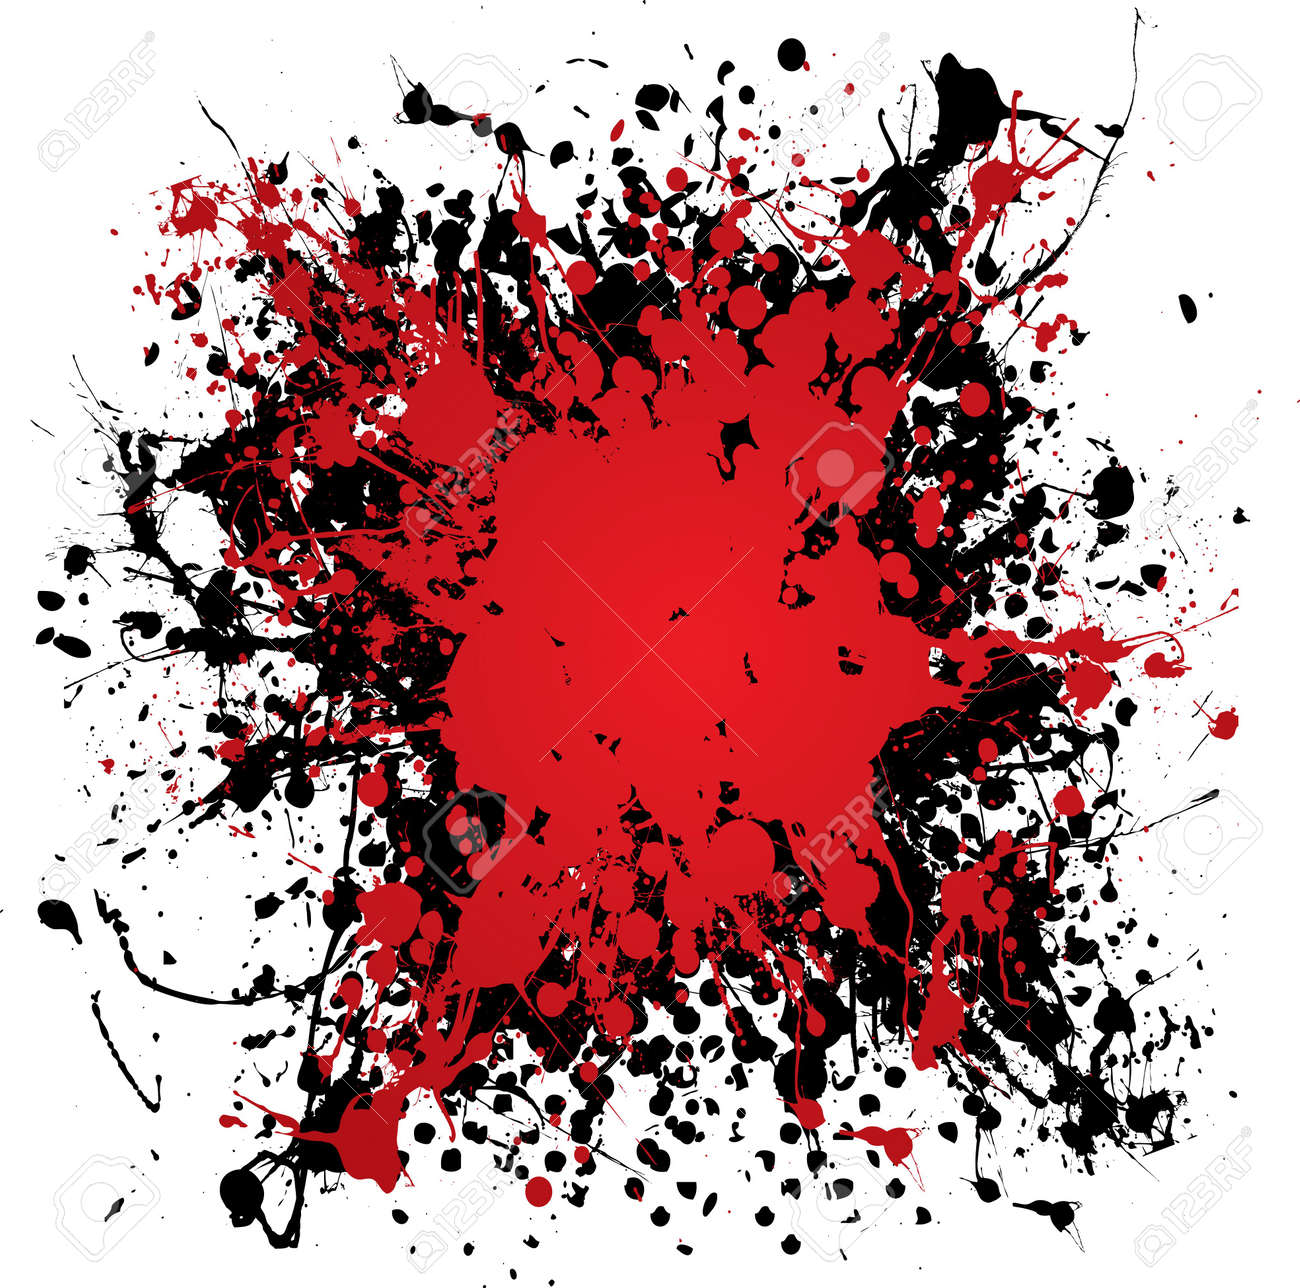 Blood red ink splat with black paint and grunge effect